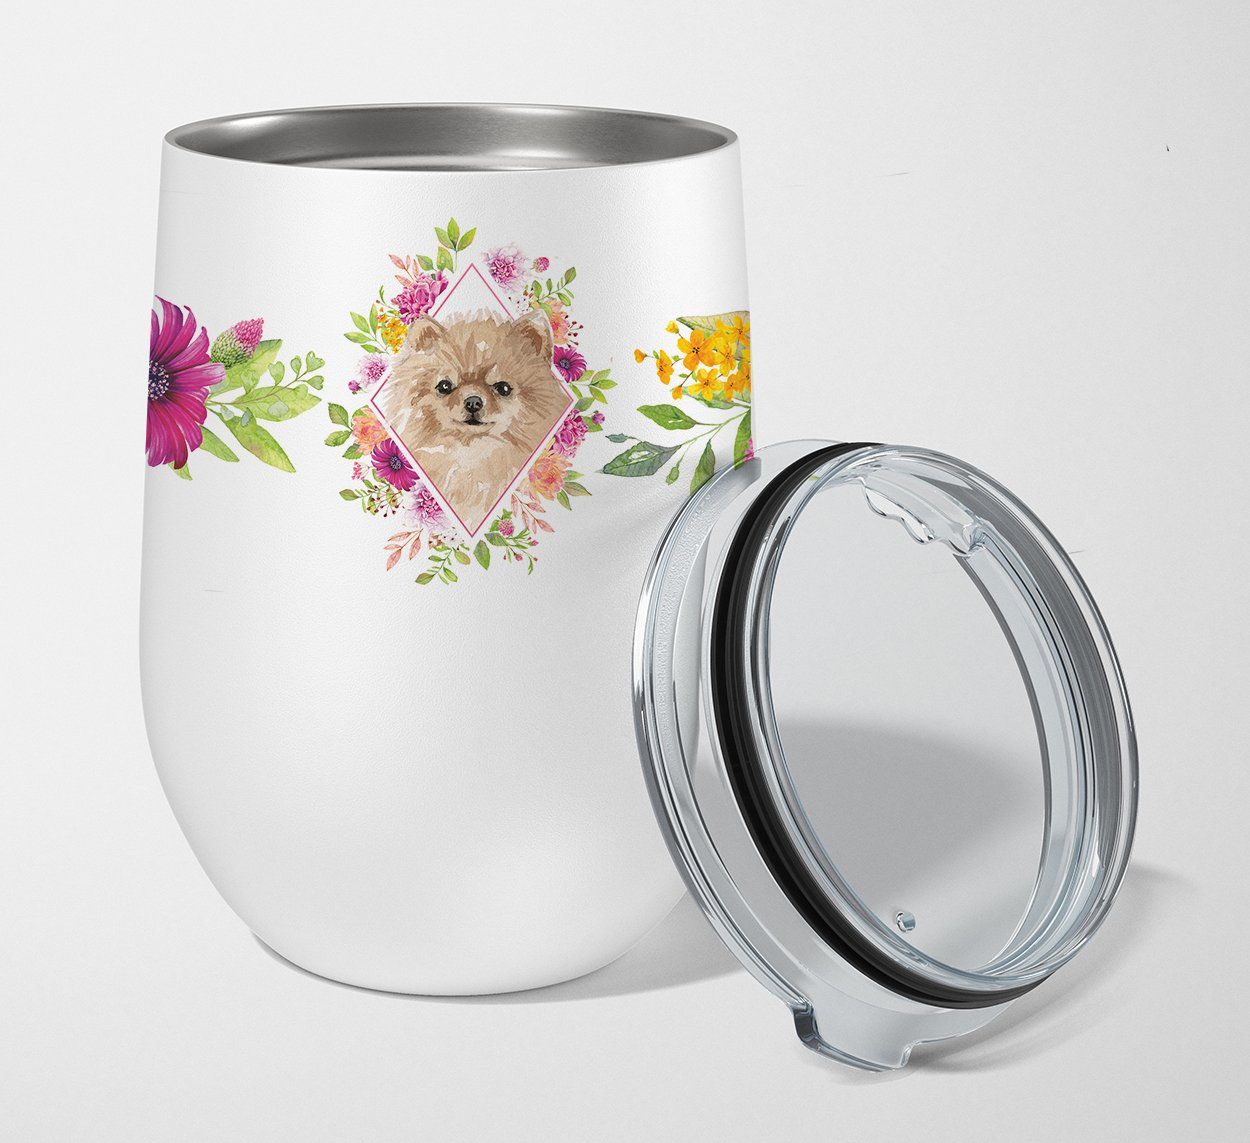 Pomeranian Pink Flowers Stainless Steel 12 oz Stemless Wine Glass CK4219TBL12 by Caroline's Treasures